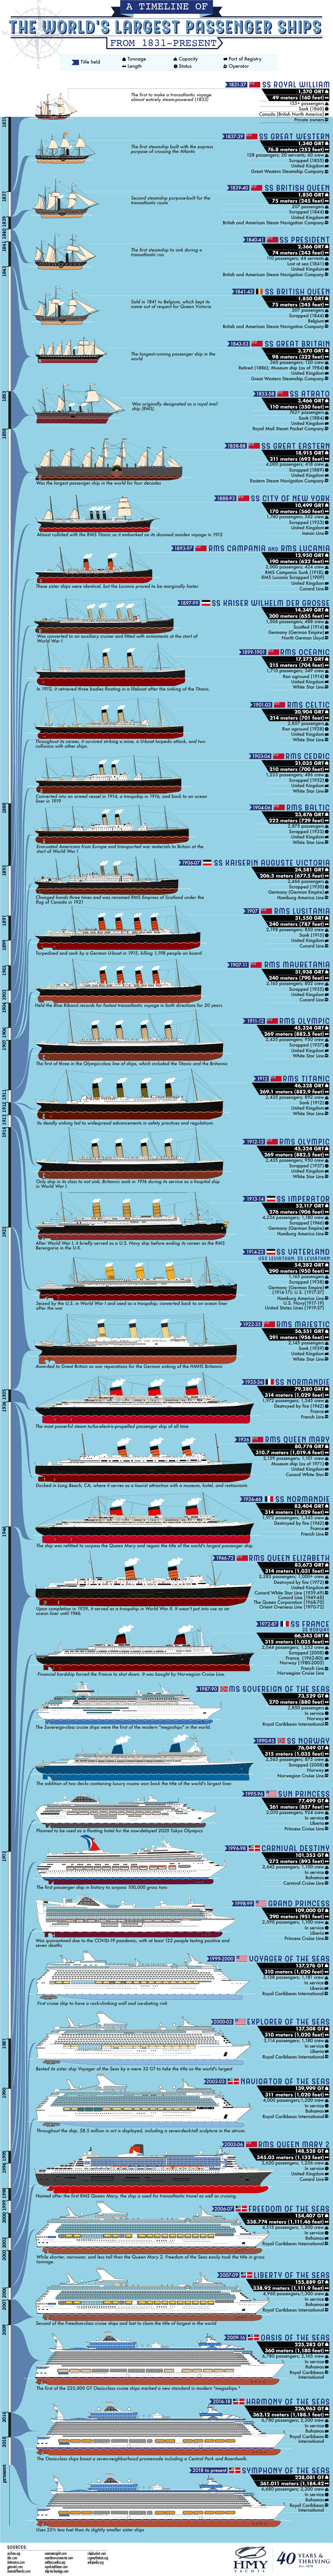 Timeline Of The Largest Cruise Ships In The World Since 1831 Pixlparade,United Airlines Ticket Change Fee